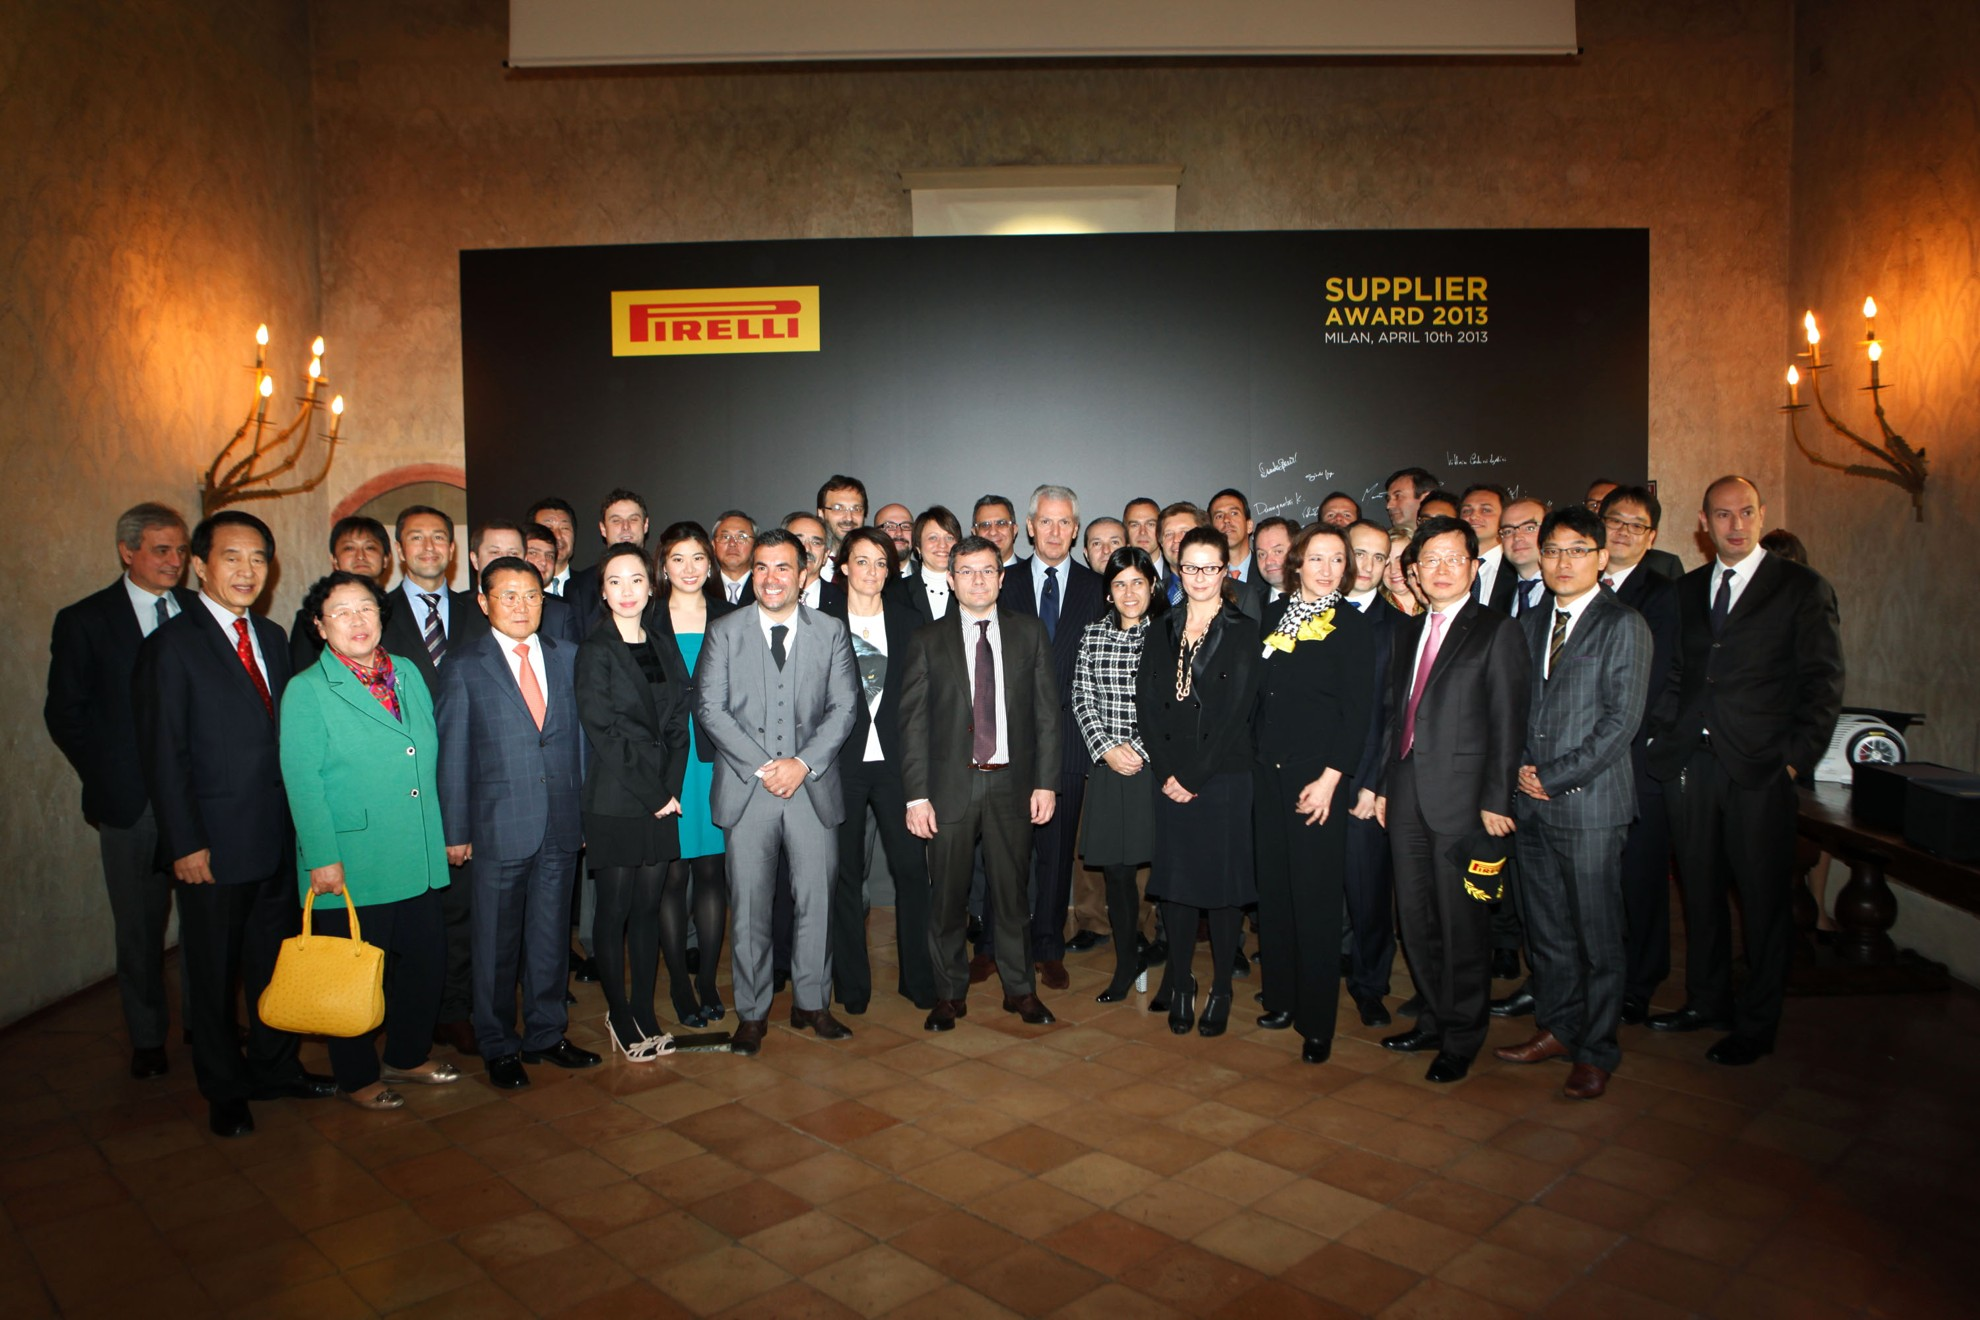 Pirelli Tyre Supplier Awards 2013